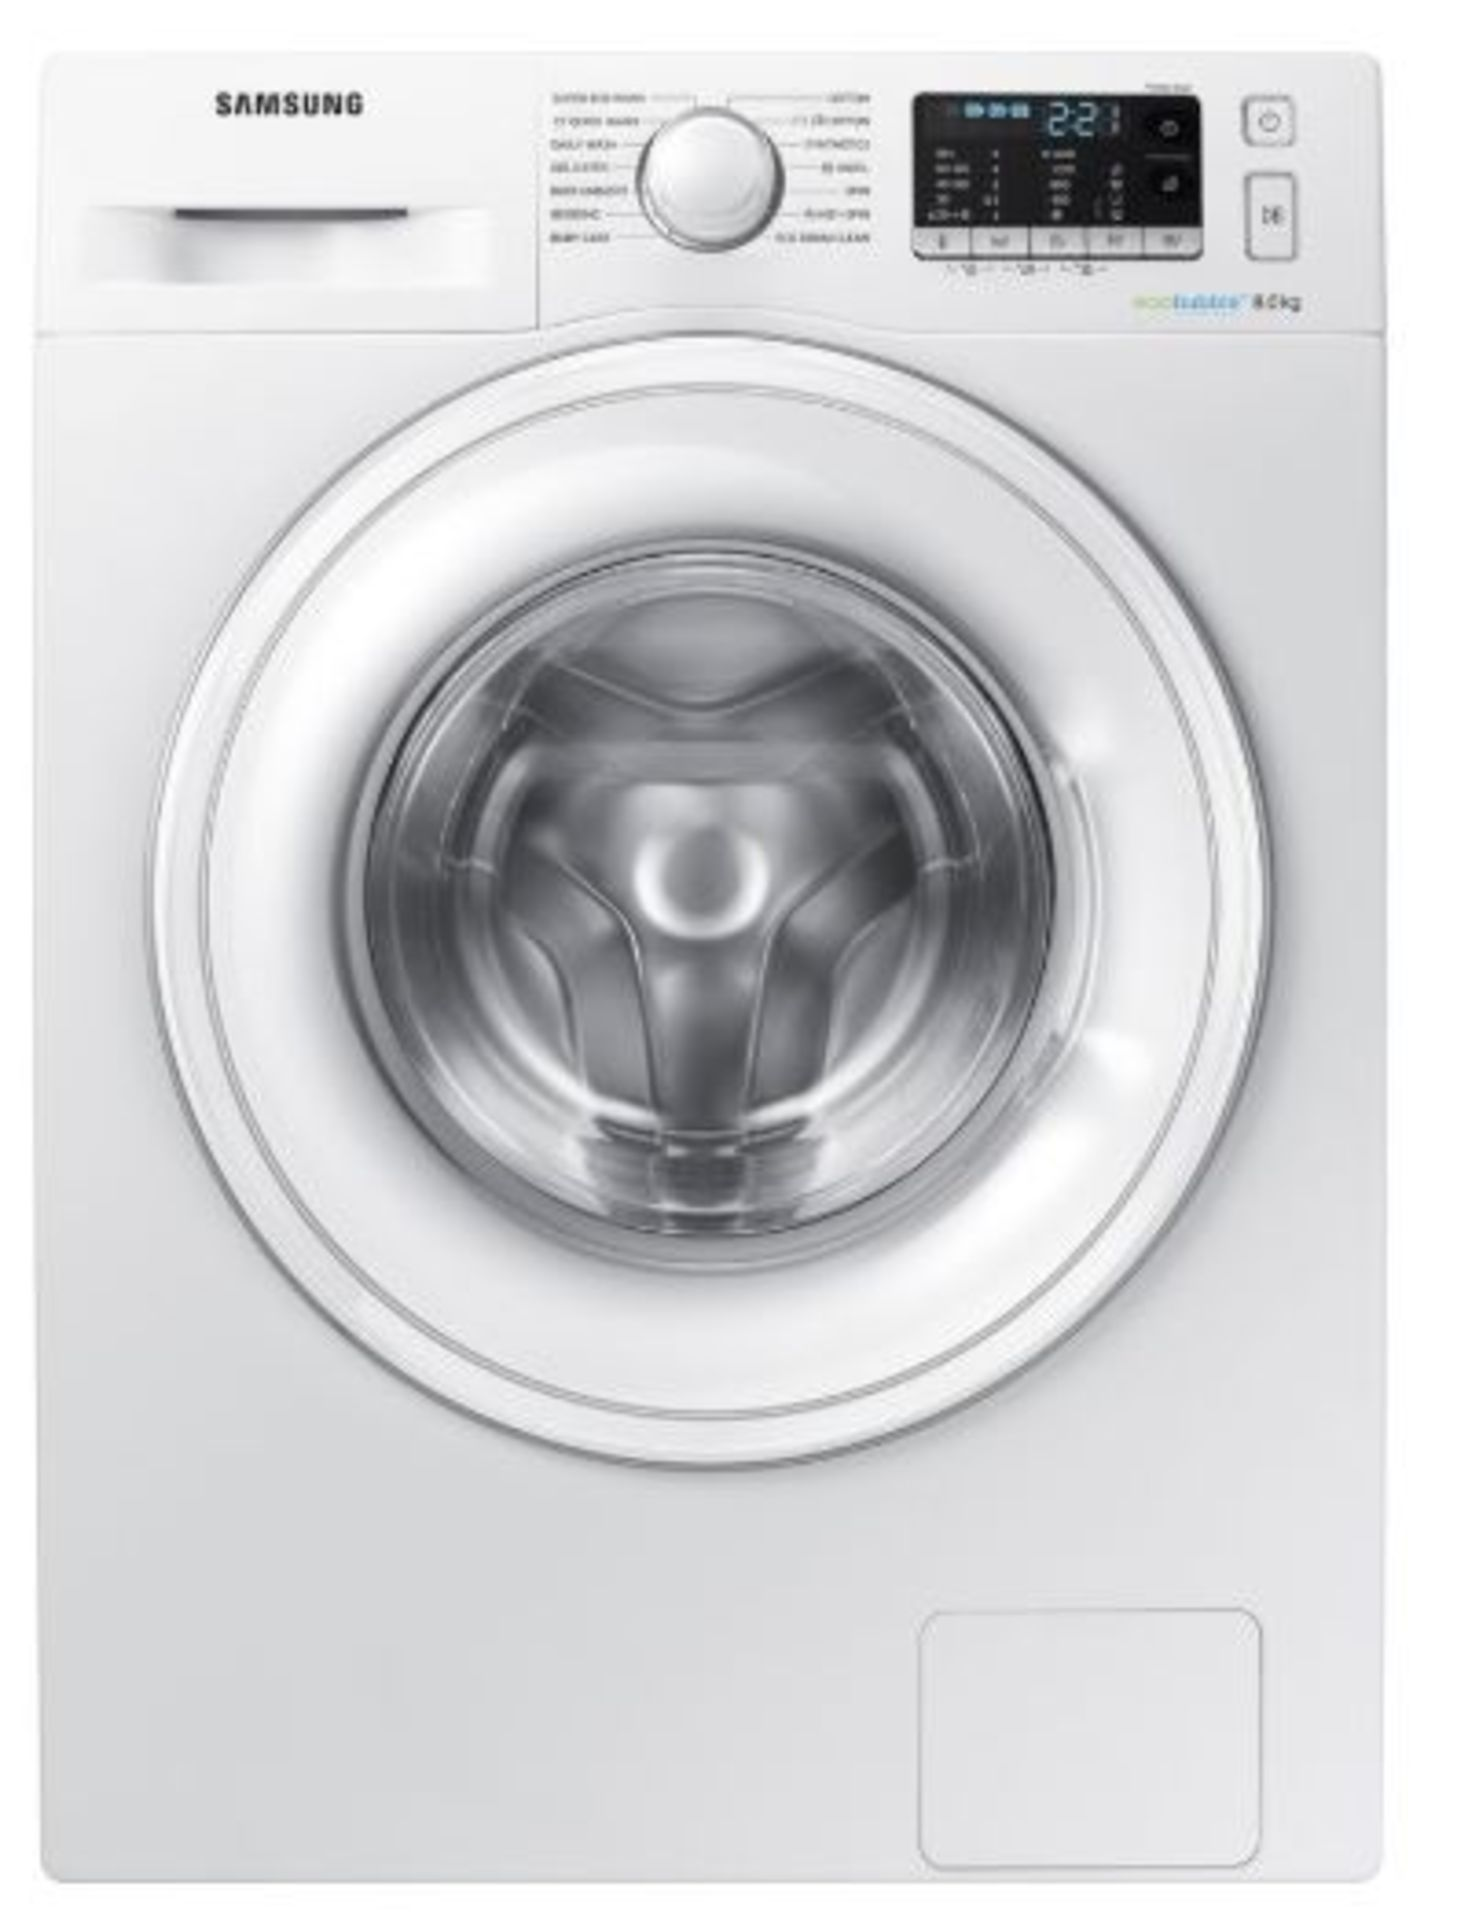 Pallet of 3 Samsung Premium Washing machines. Total Latest selling price £1,087* - Image 3 of 10